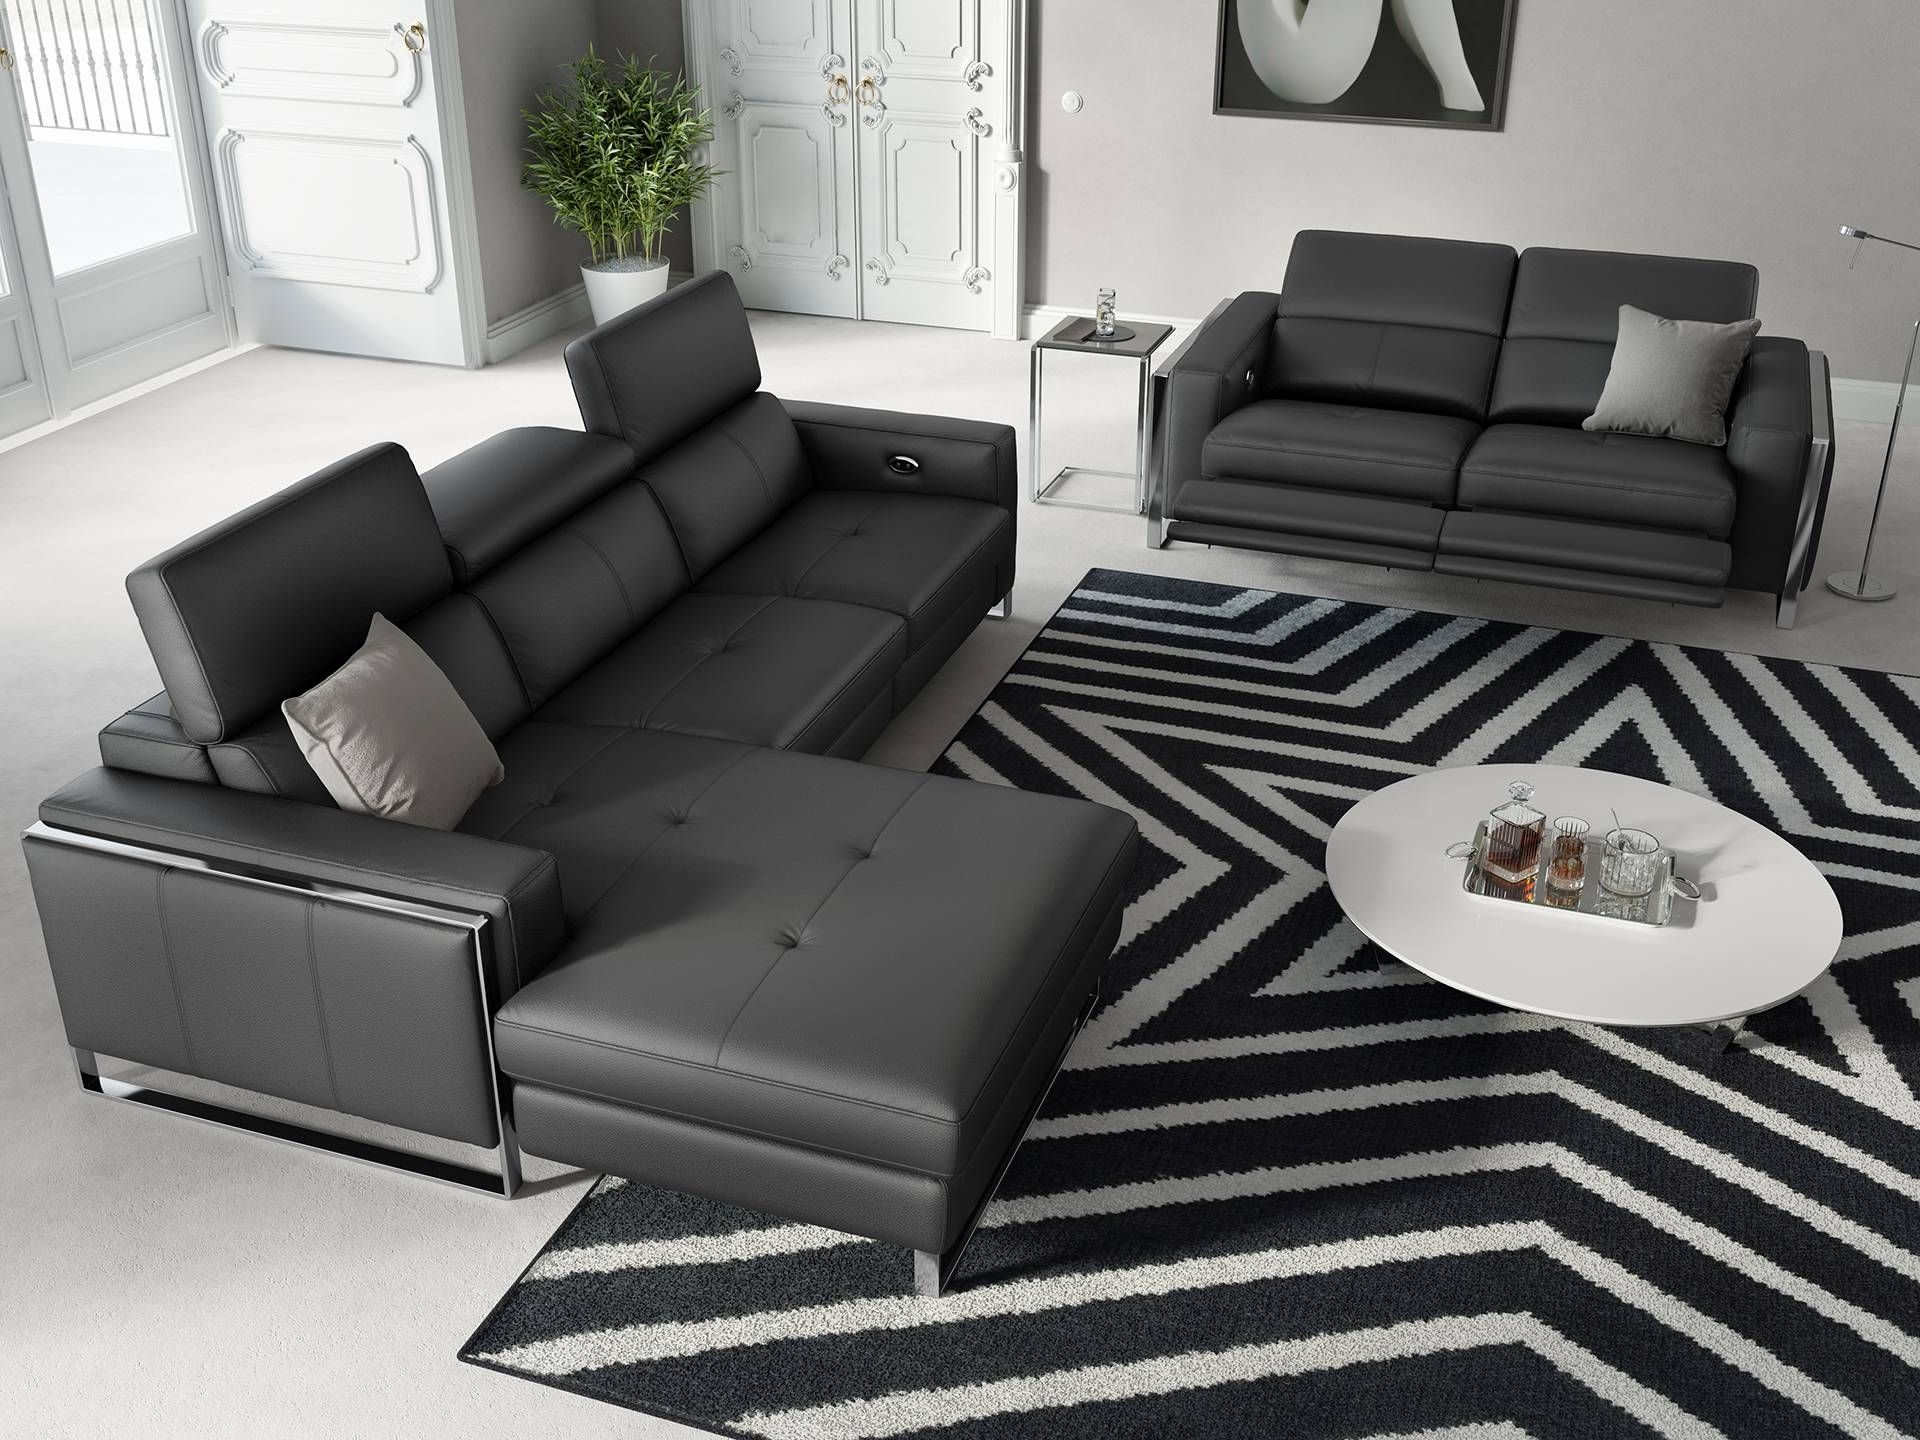 eckgarnitur sofa mit relaxfunktion in leder sofanella valiano living room wohn. Black Bedroom Furniture Sets. Home Design Ideas